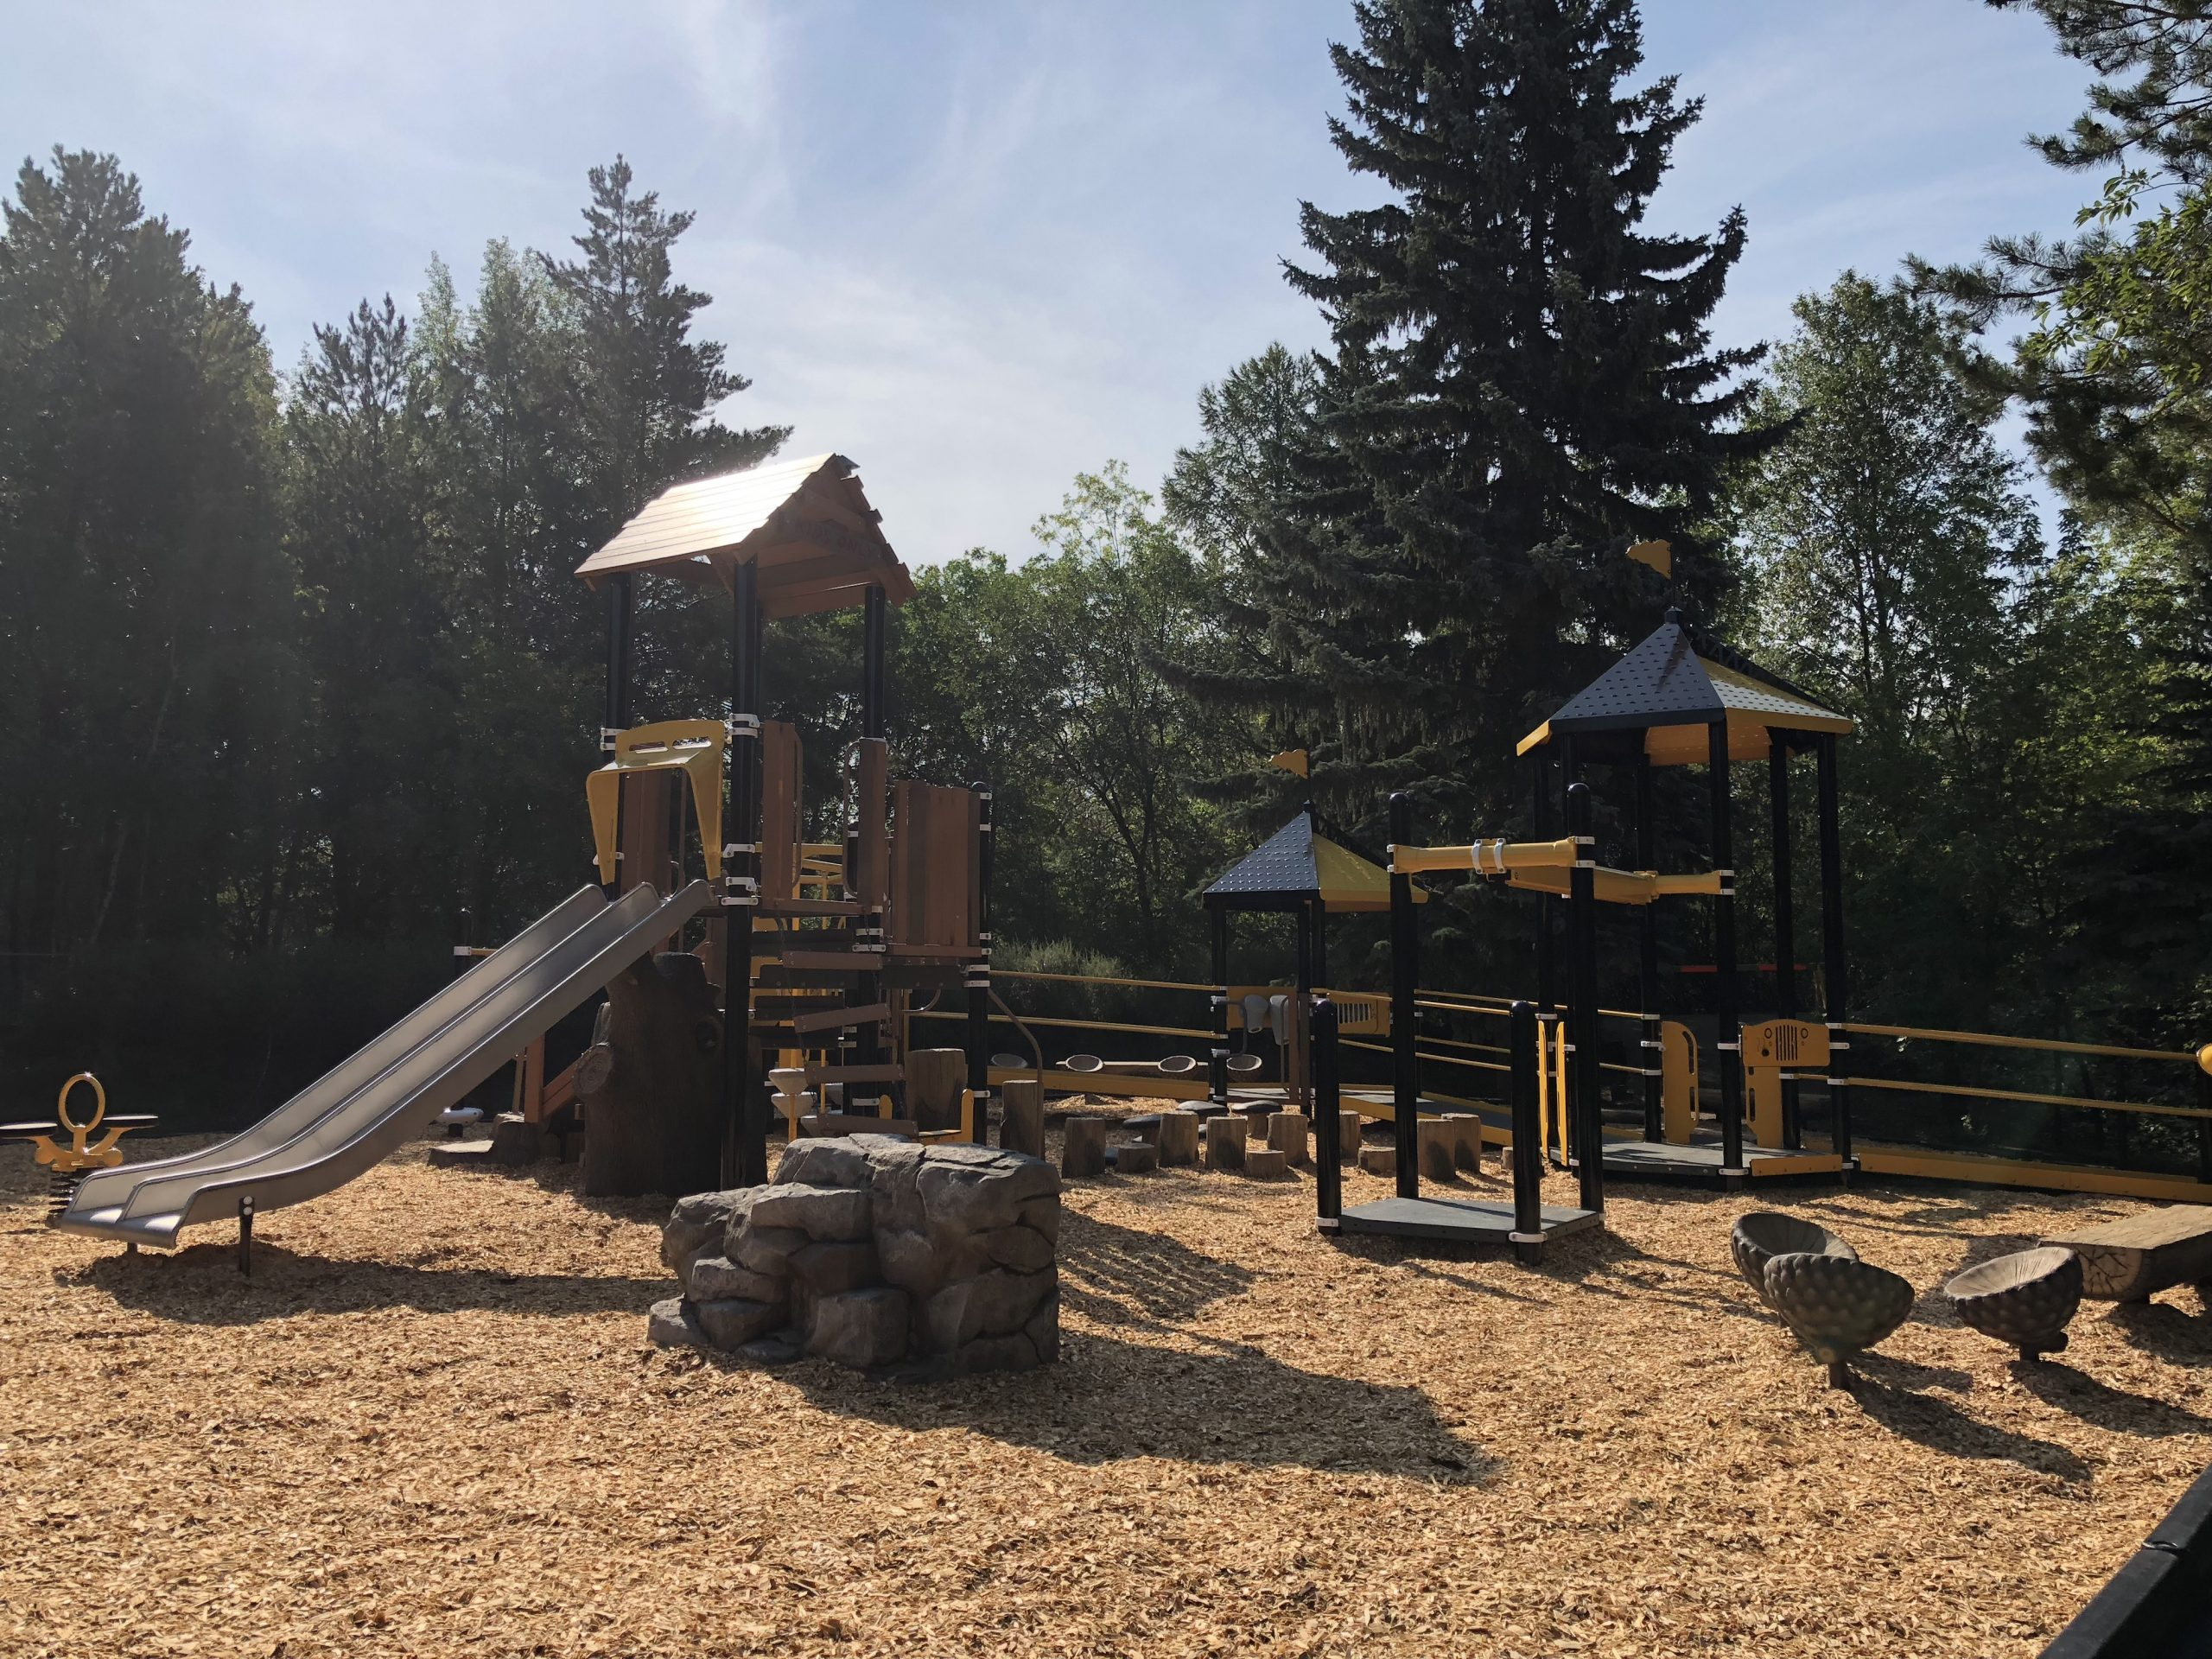 Forestry Farm features new Playground